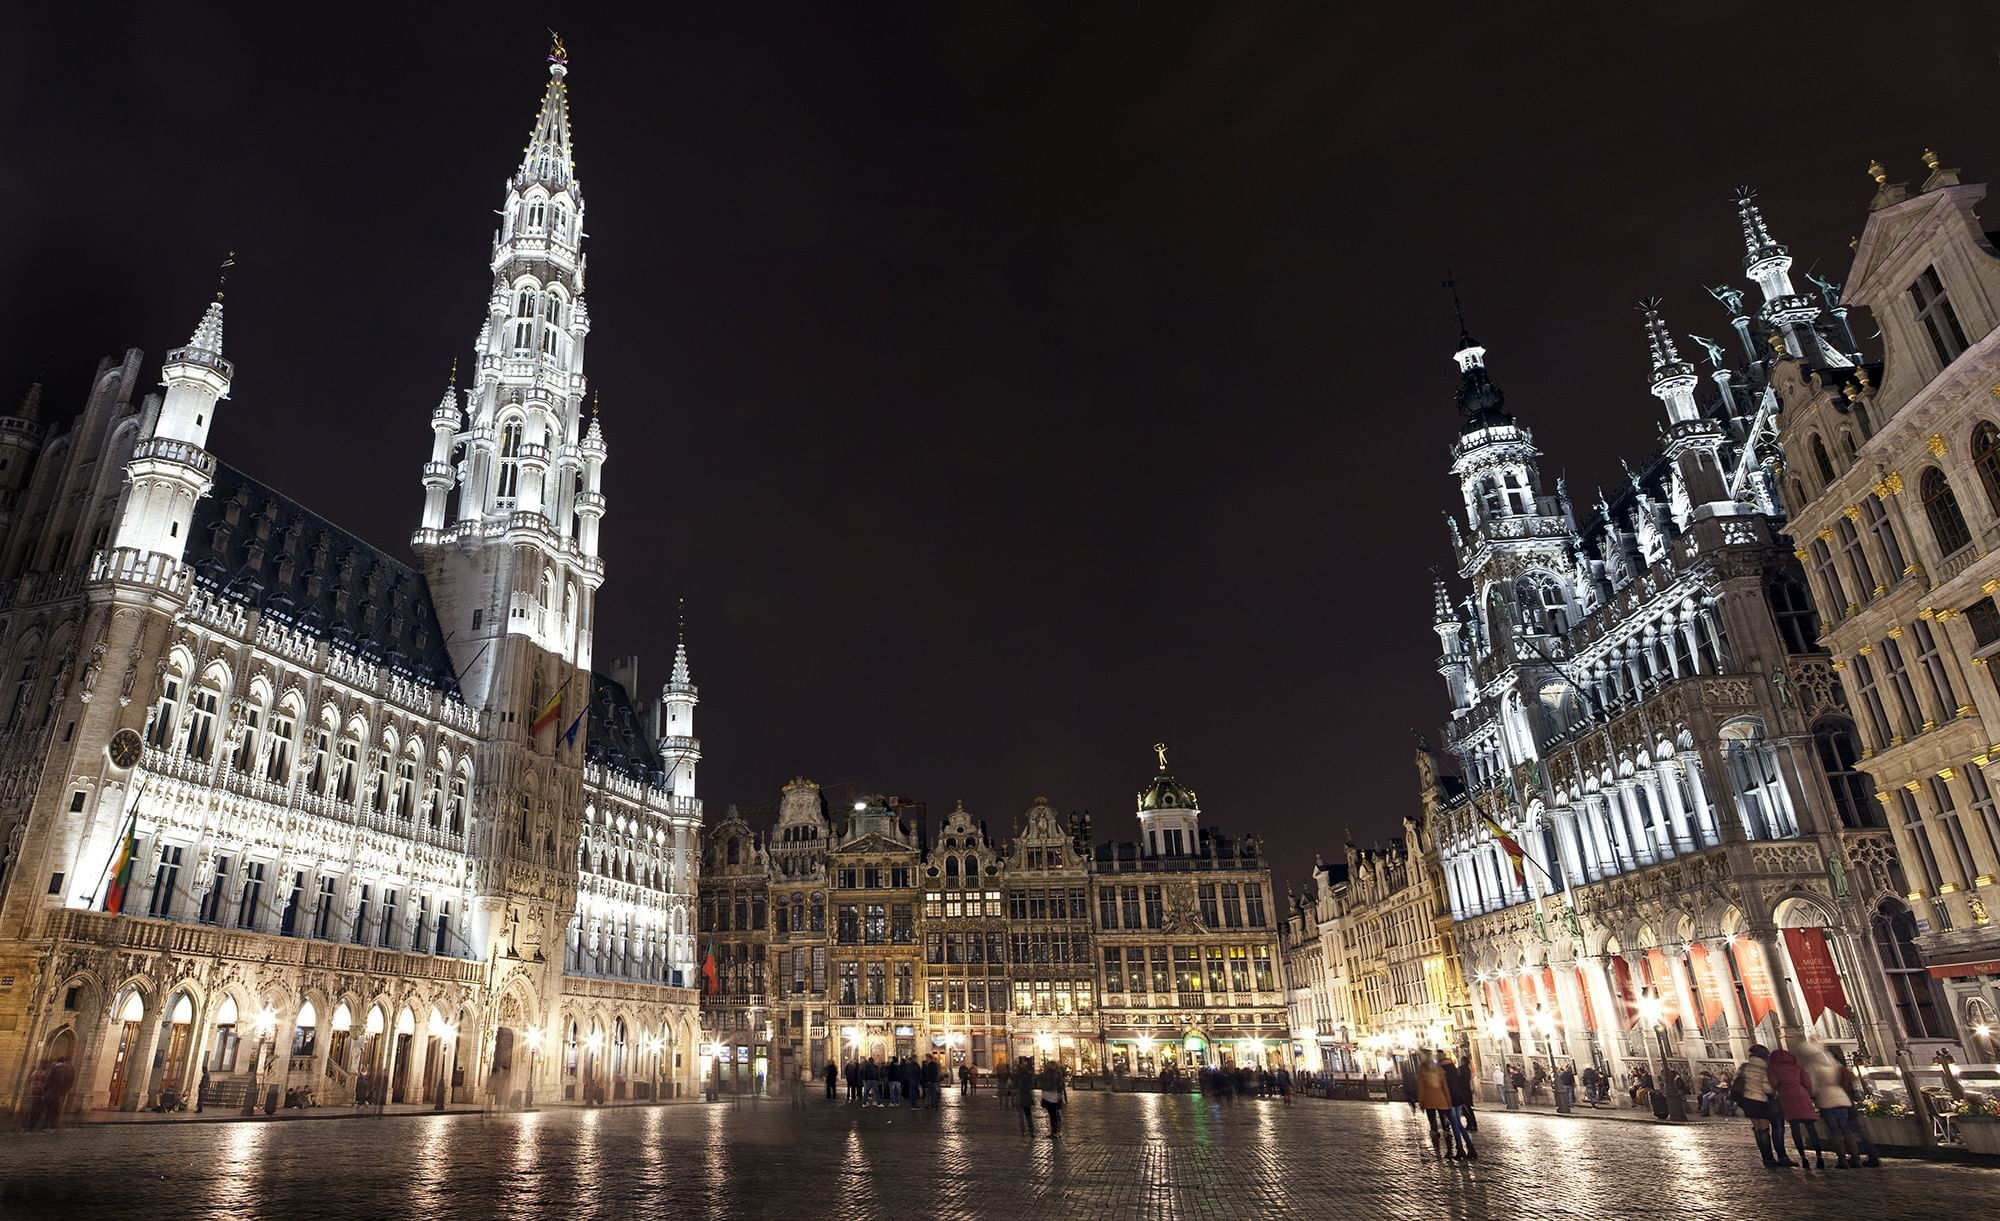 Brussels square by night